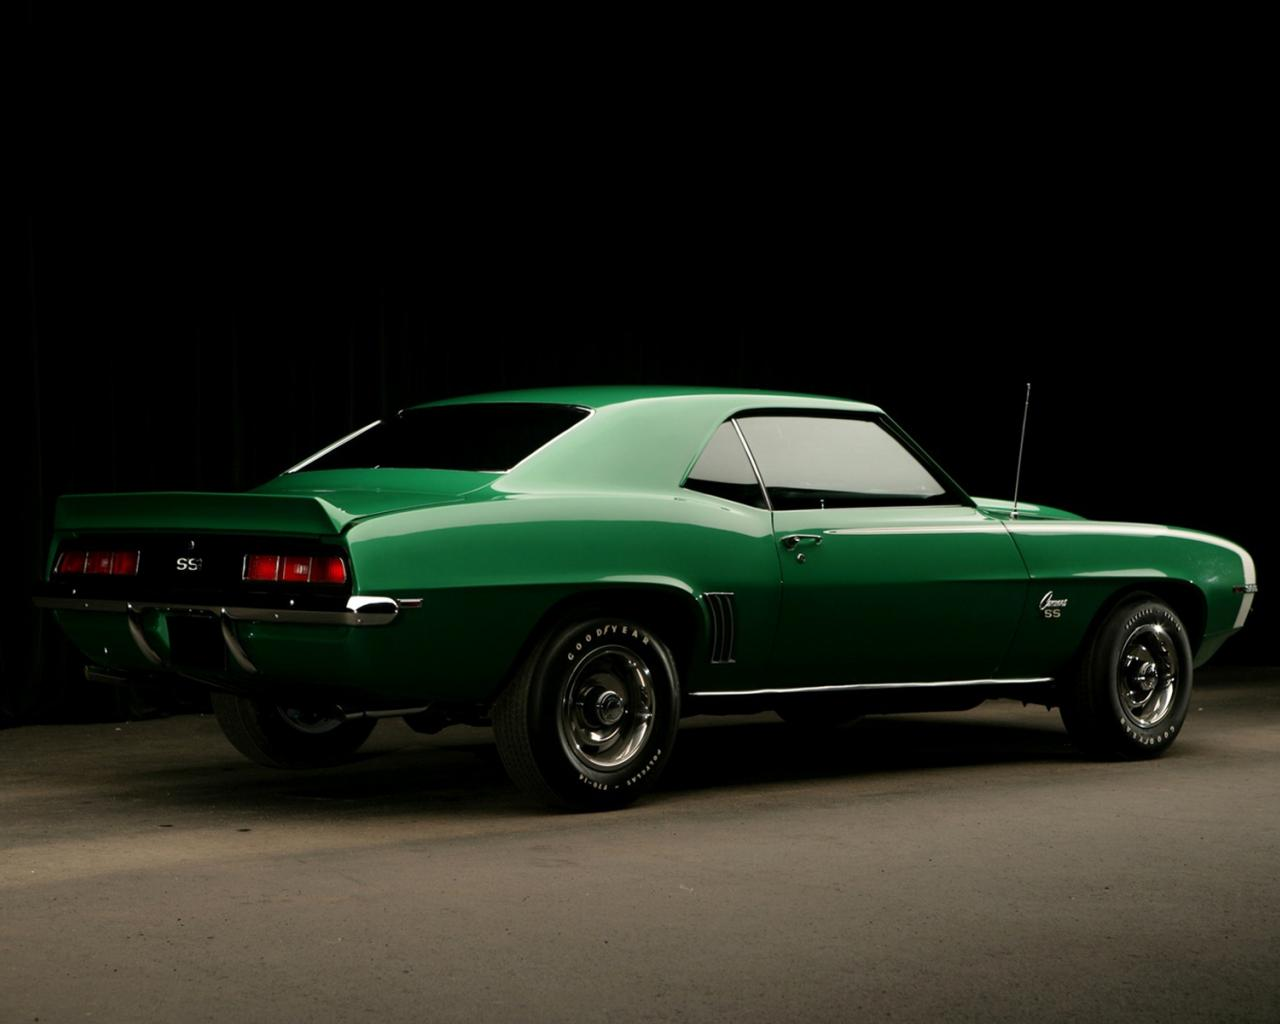 Muscle Cars Wallpaper Wallpaper Pics Pictures Hd for Desktop 1280x1024